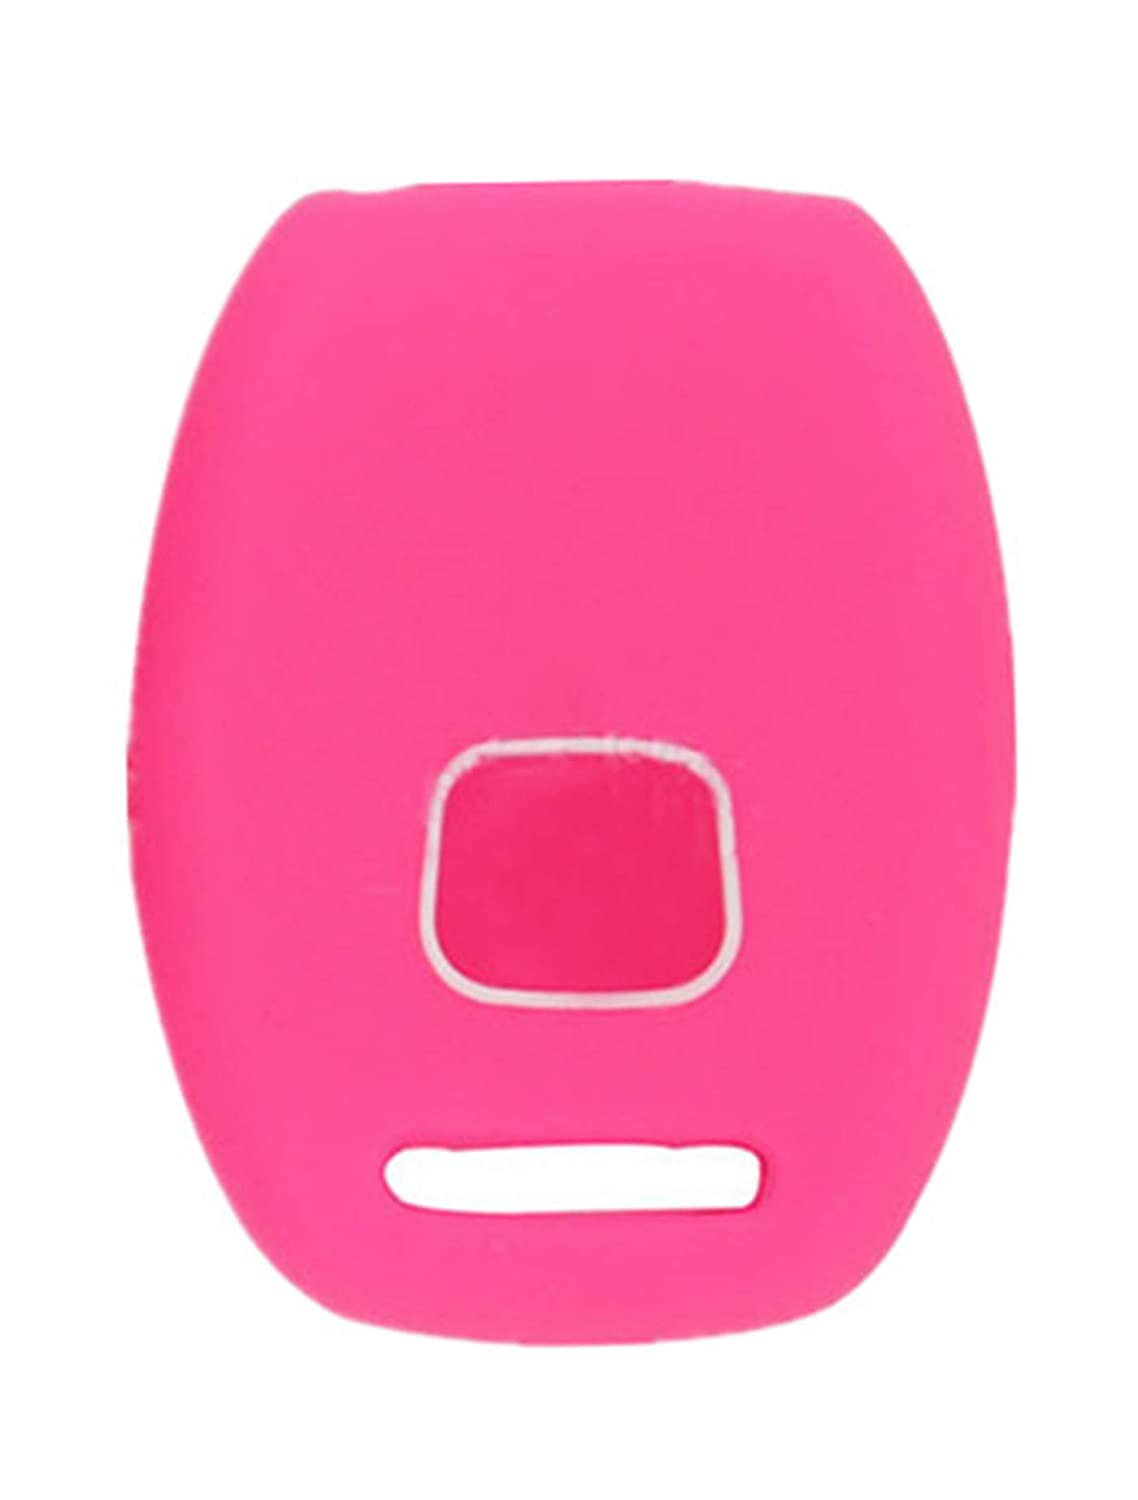 KAWIHEN Silicone Keyless Entry Case Cover Smart Remote Key Fob Cover Protector For Honda Civic Odyssey Pilo 3 Buttons CWTWB1U545 3248A-S0084A 35111-SVA-305